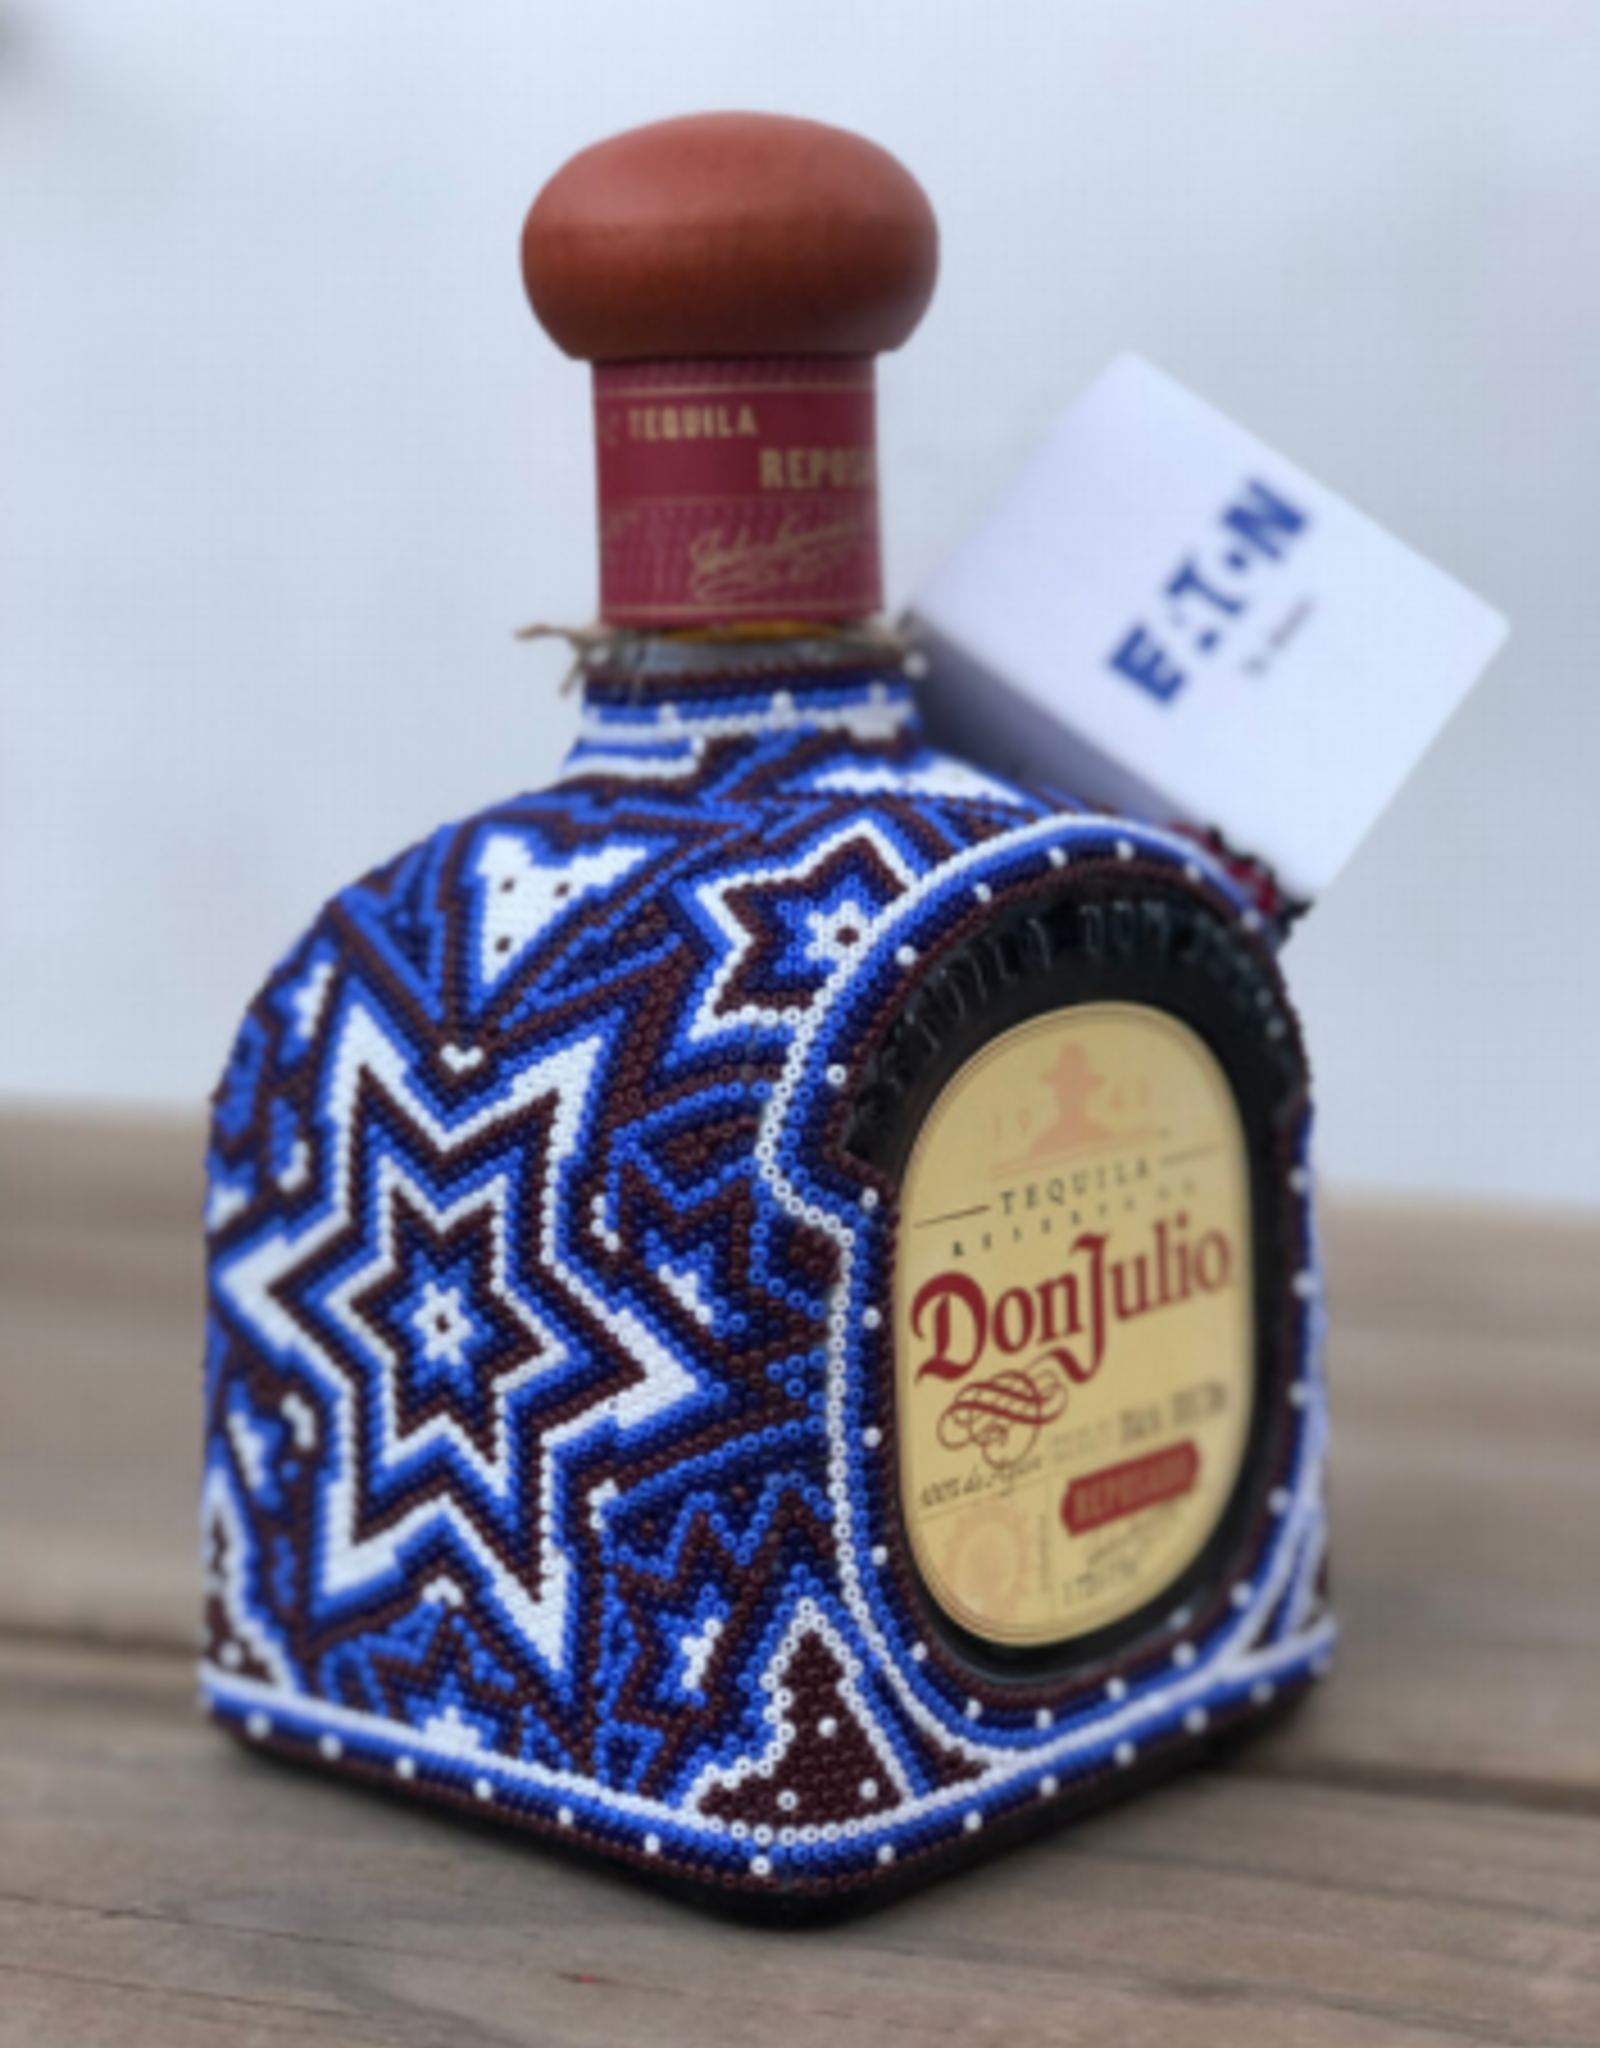 ASCALAPHA DON JULIO REPOSADO 700ML, ASCALAPHA